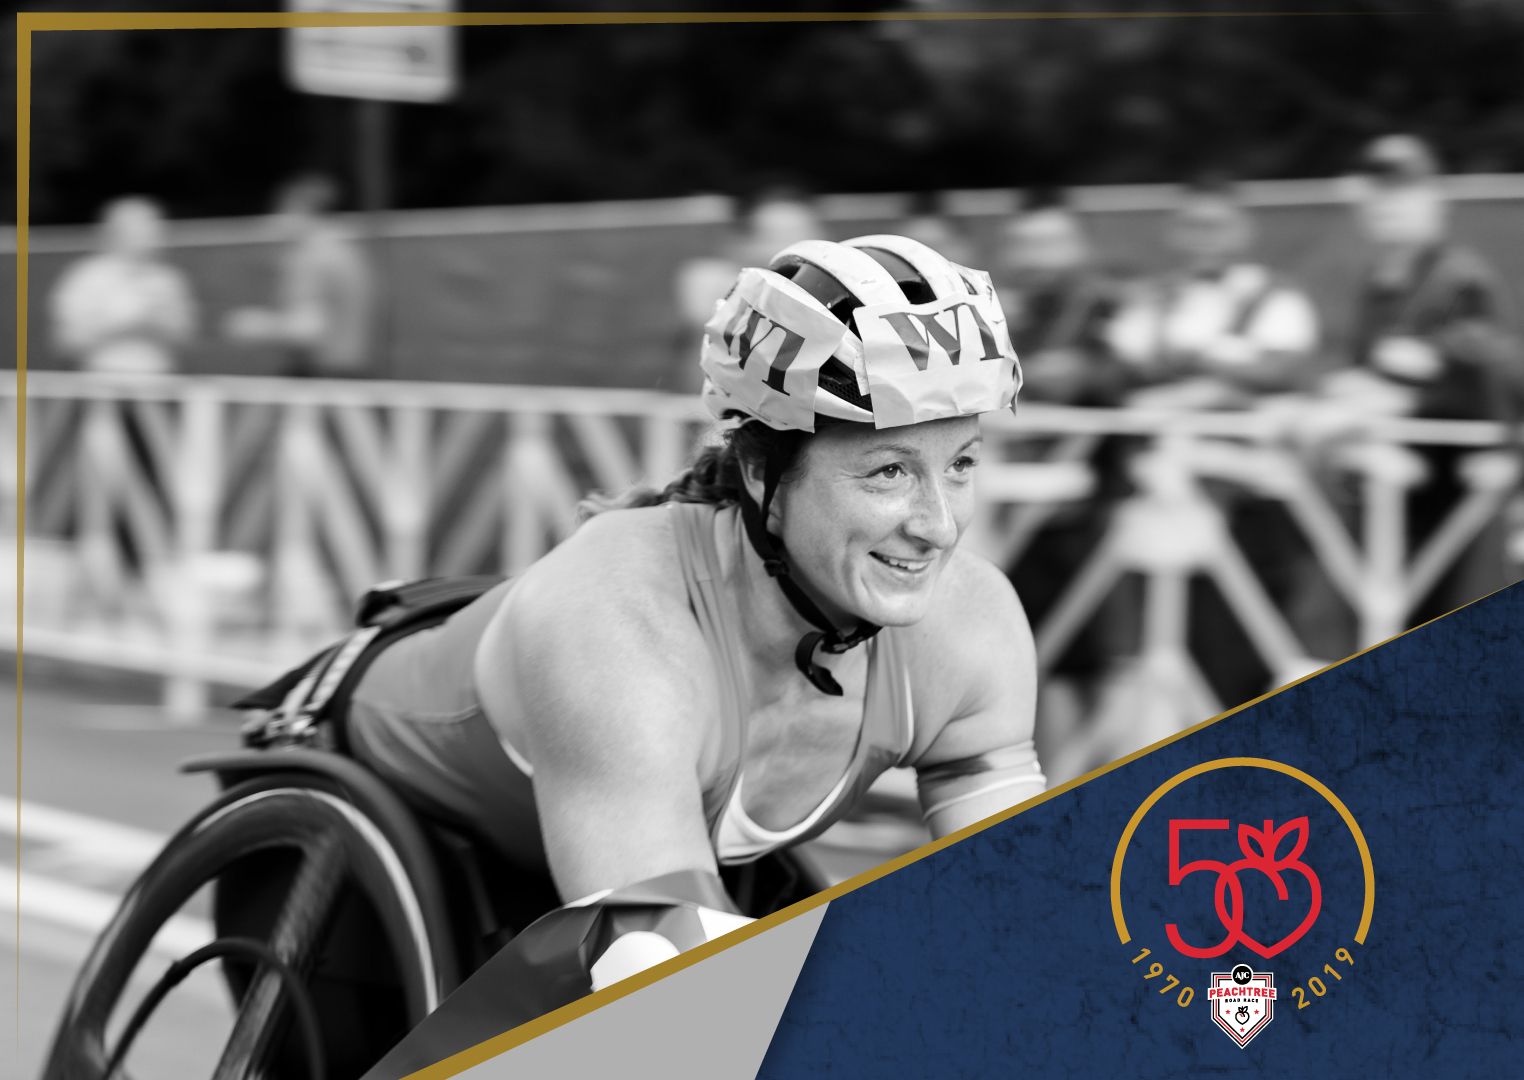 The Wheelchair Division at the Peachtree - By Barbara HuebnerExploring the history of the wheelchair division and the Shepherd Center at the AJC Peachtree Road Race.